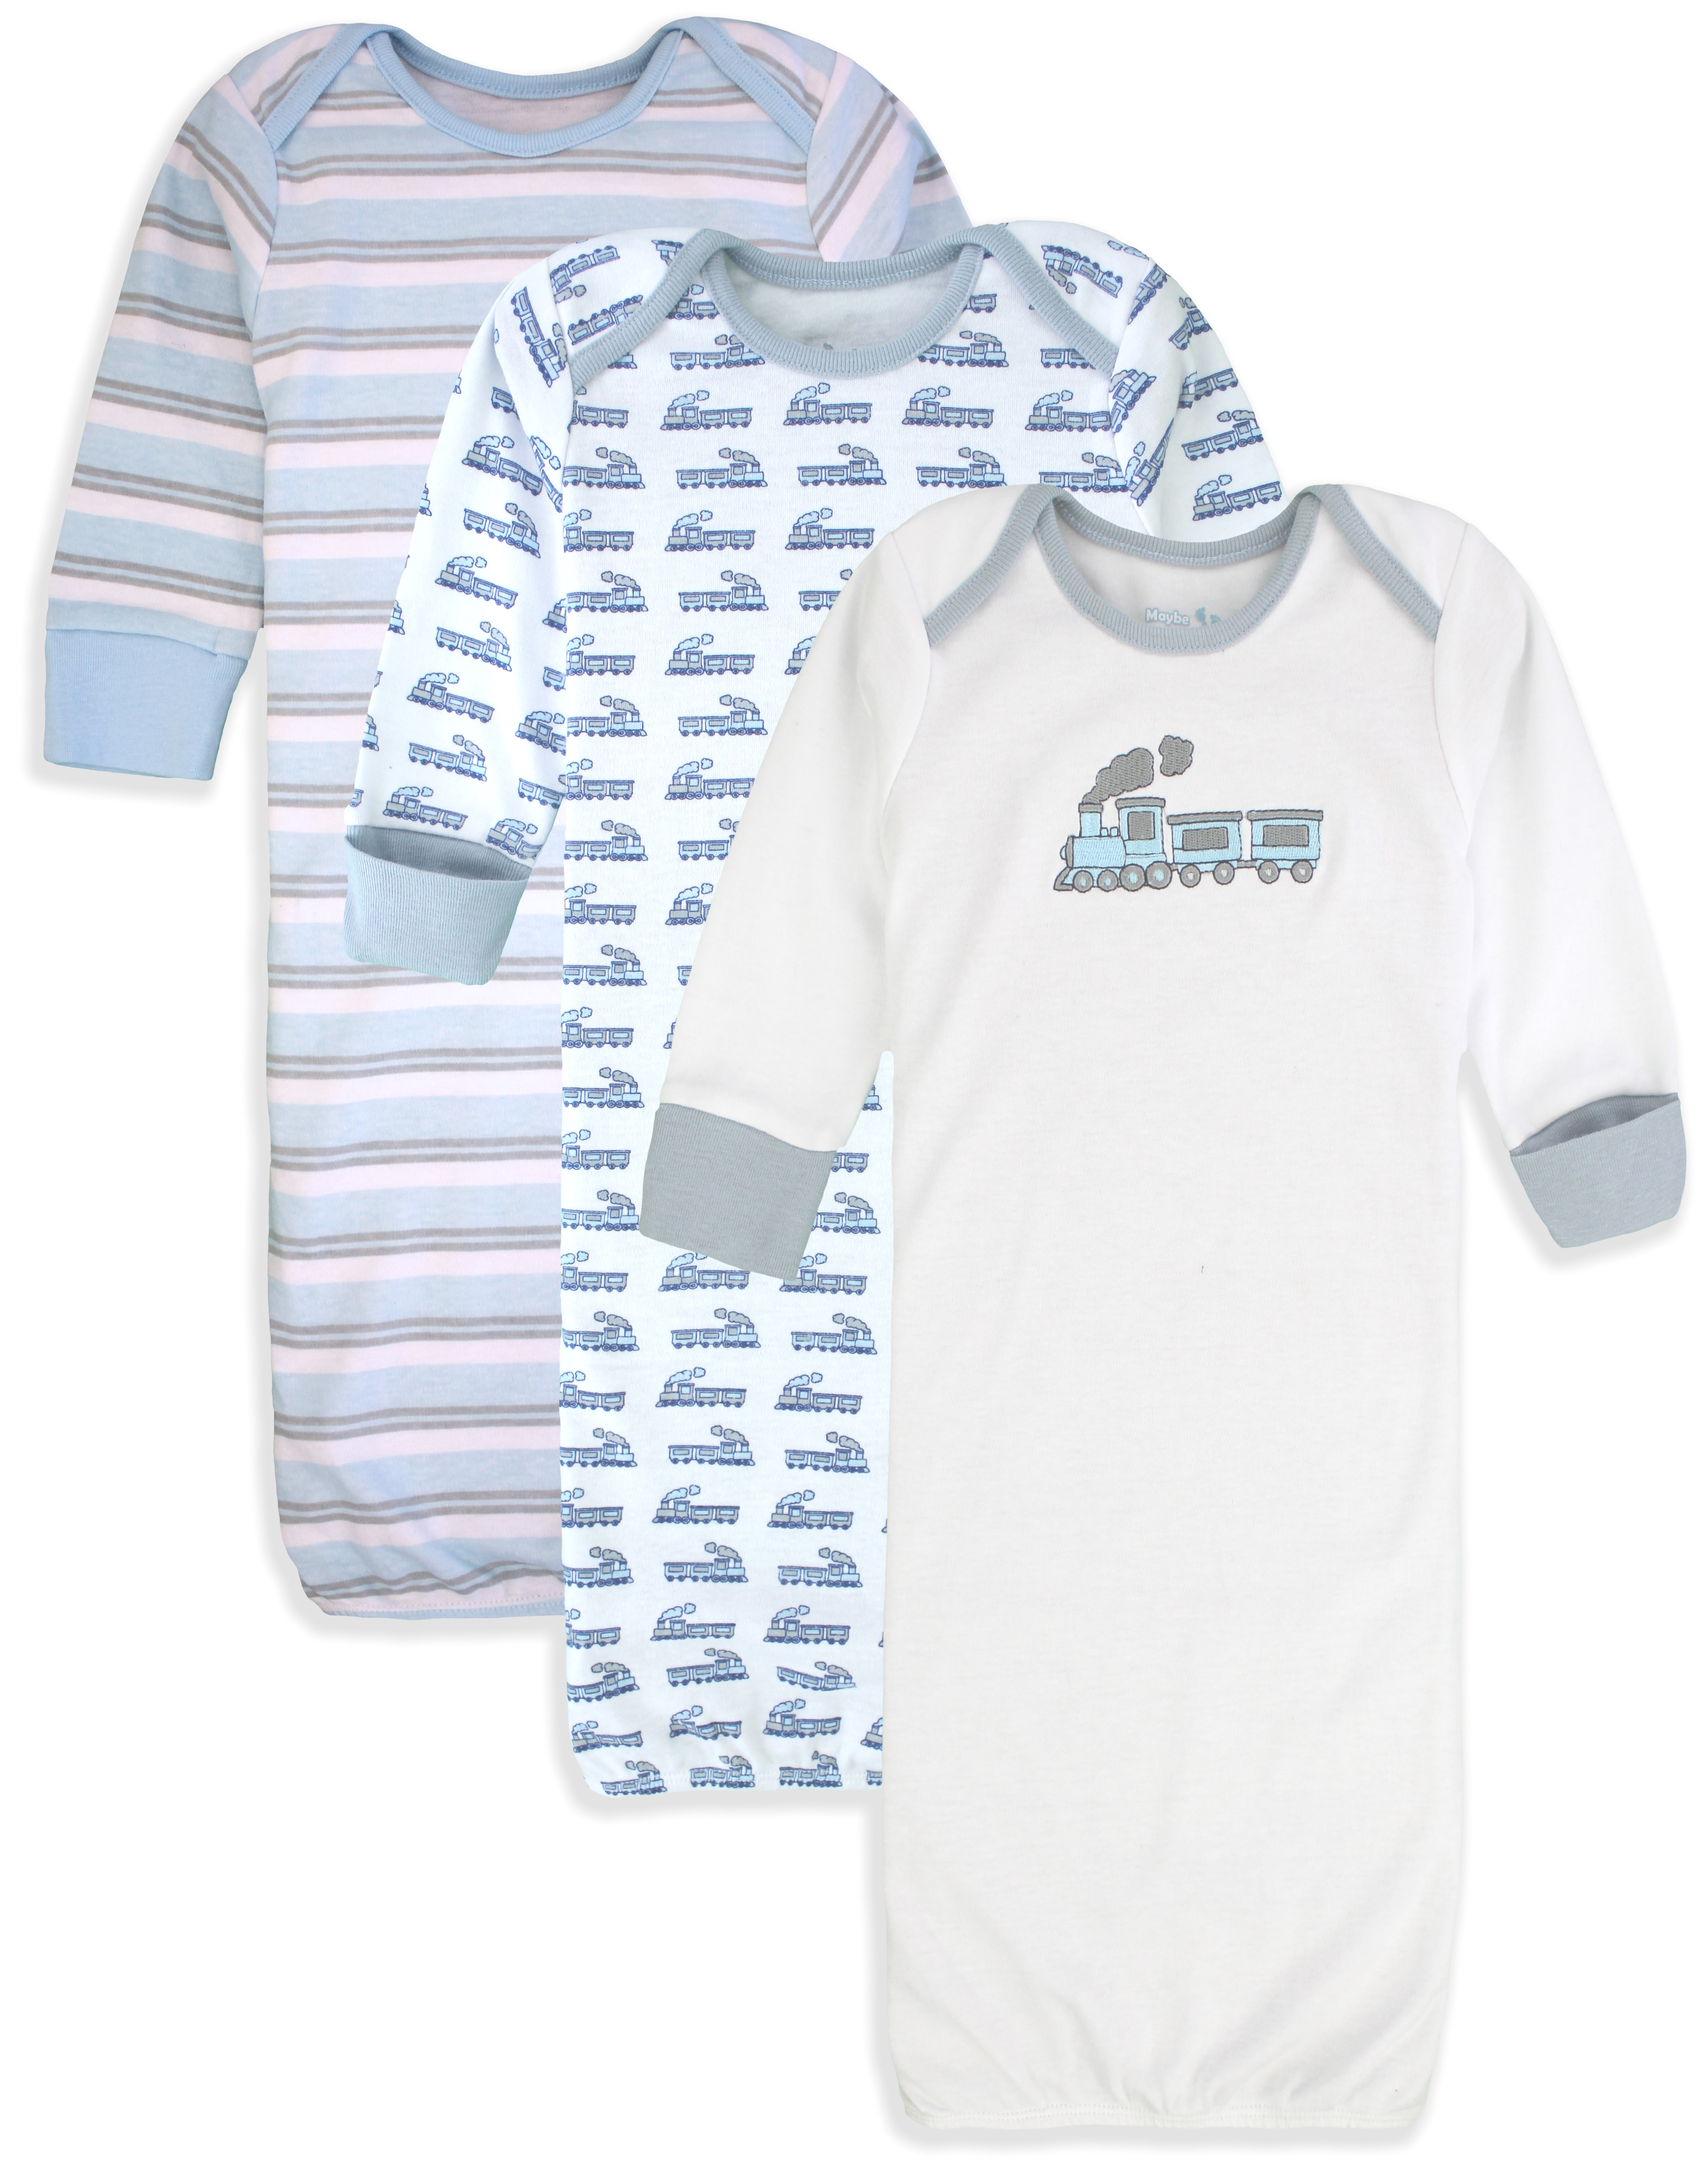 Maybe Baby Kids Infant Boys' and Girls' 3 Pack Cotton Baby Gowns w/ Mitten Cuffs 0-6 Months…